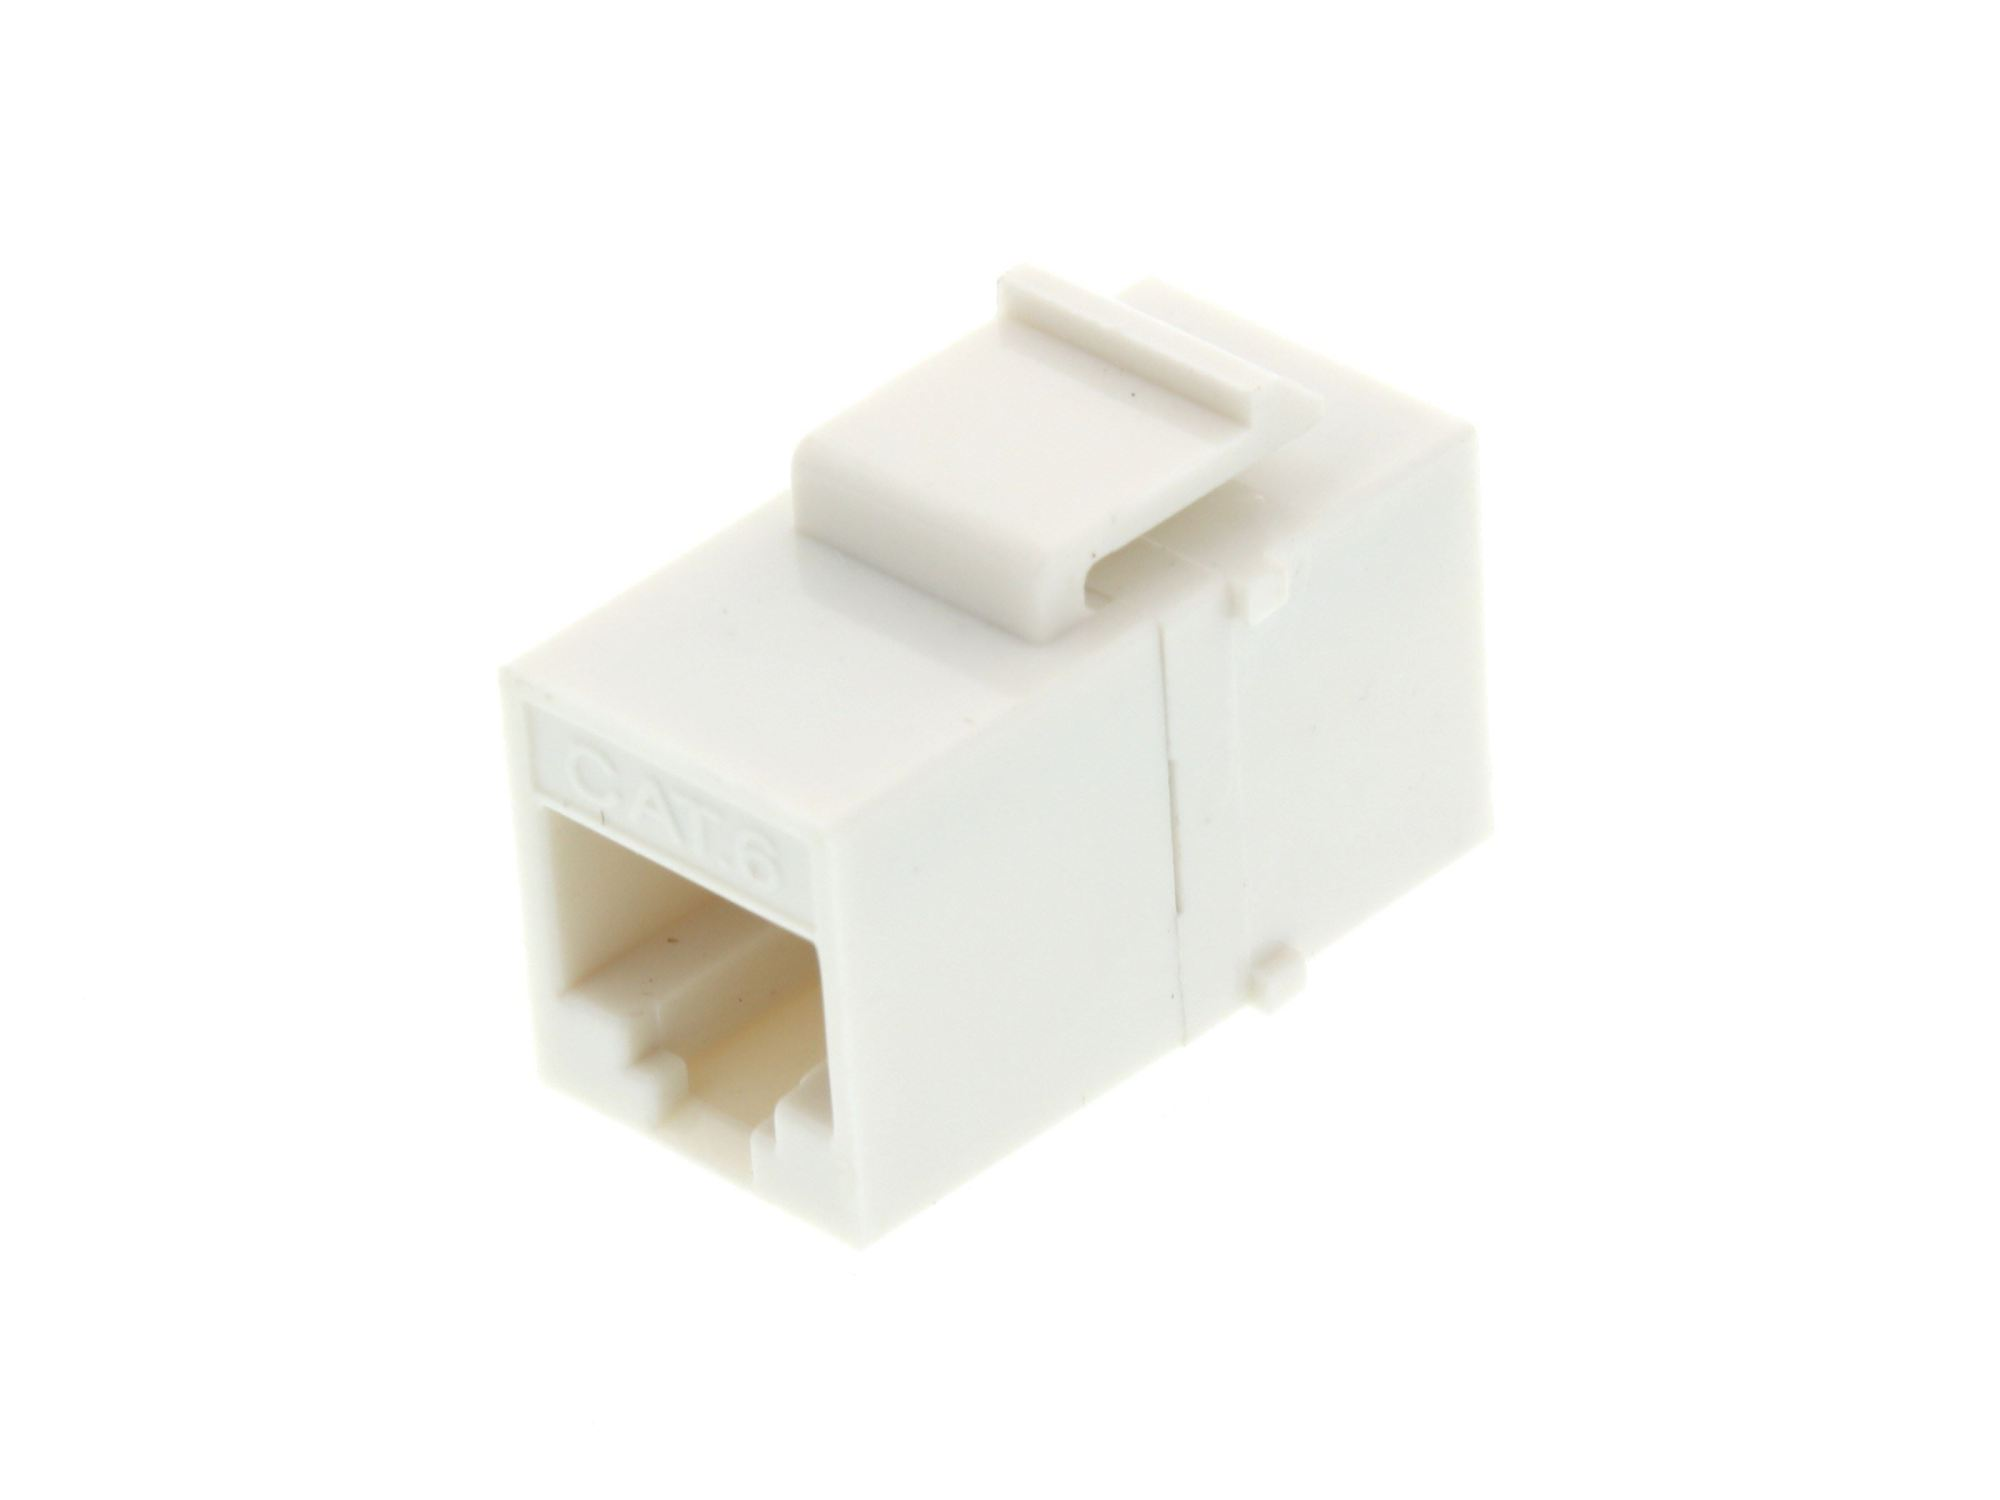 hight resolution of  picture of rj45 cat6 keystone jack pass through panel mount white